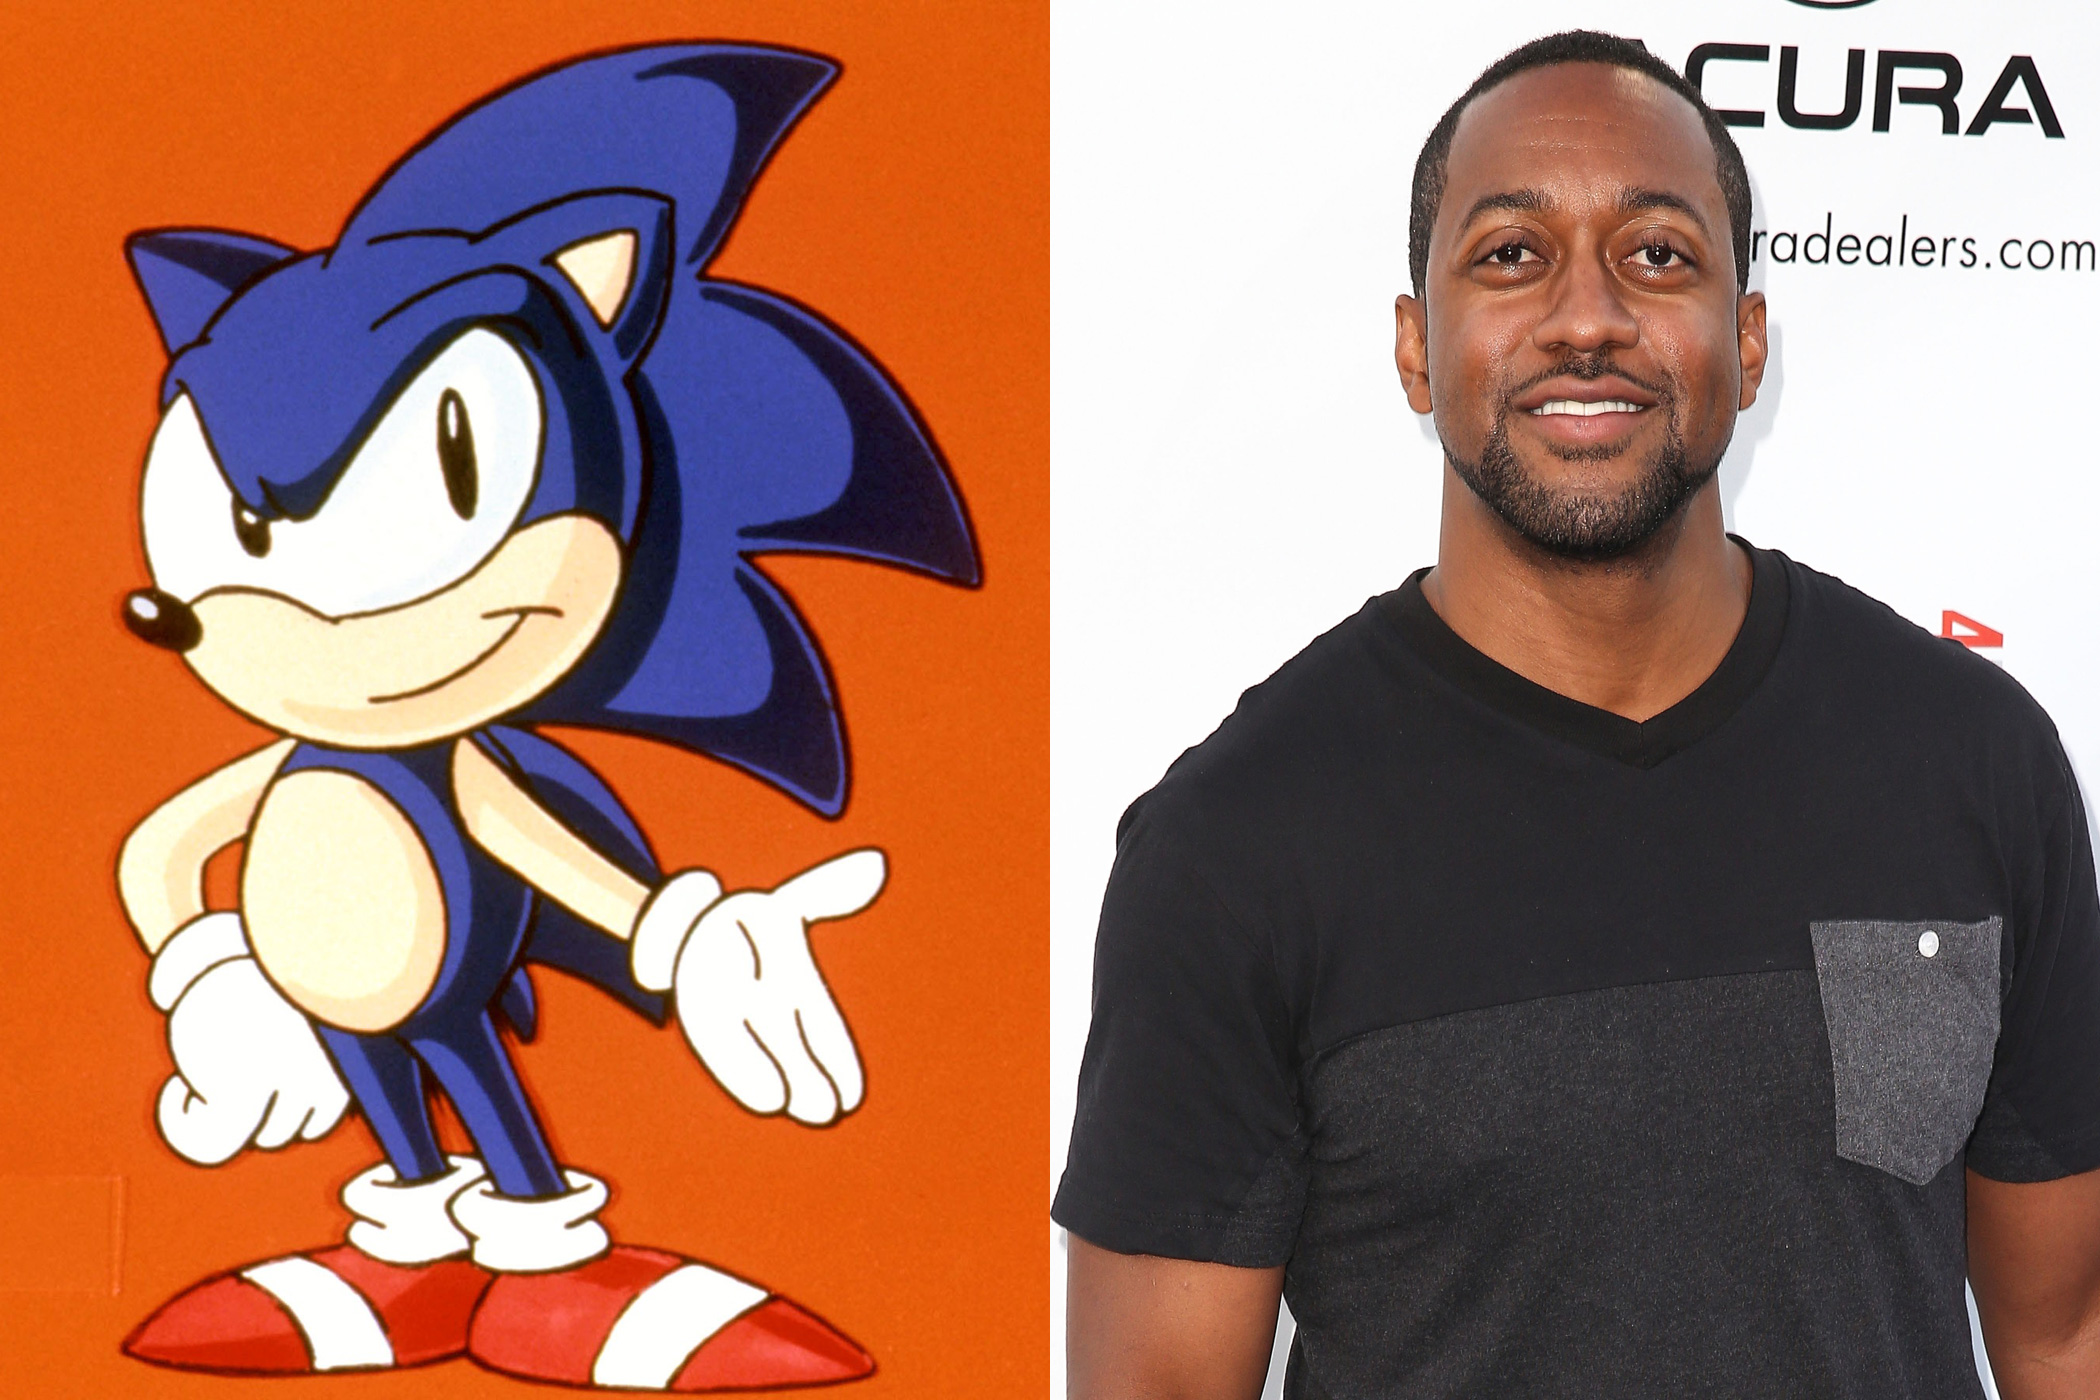 Jaleel White, the actor formerly known as Urkel, was the voice of Sonic the Hedghog in the 90s television show <i>Adventures of Sonic the Hedgehog</i>.